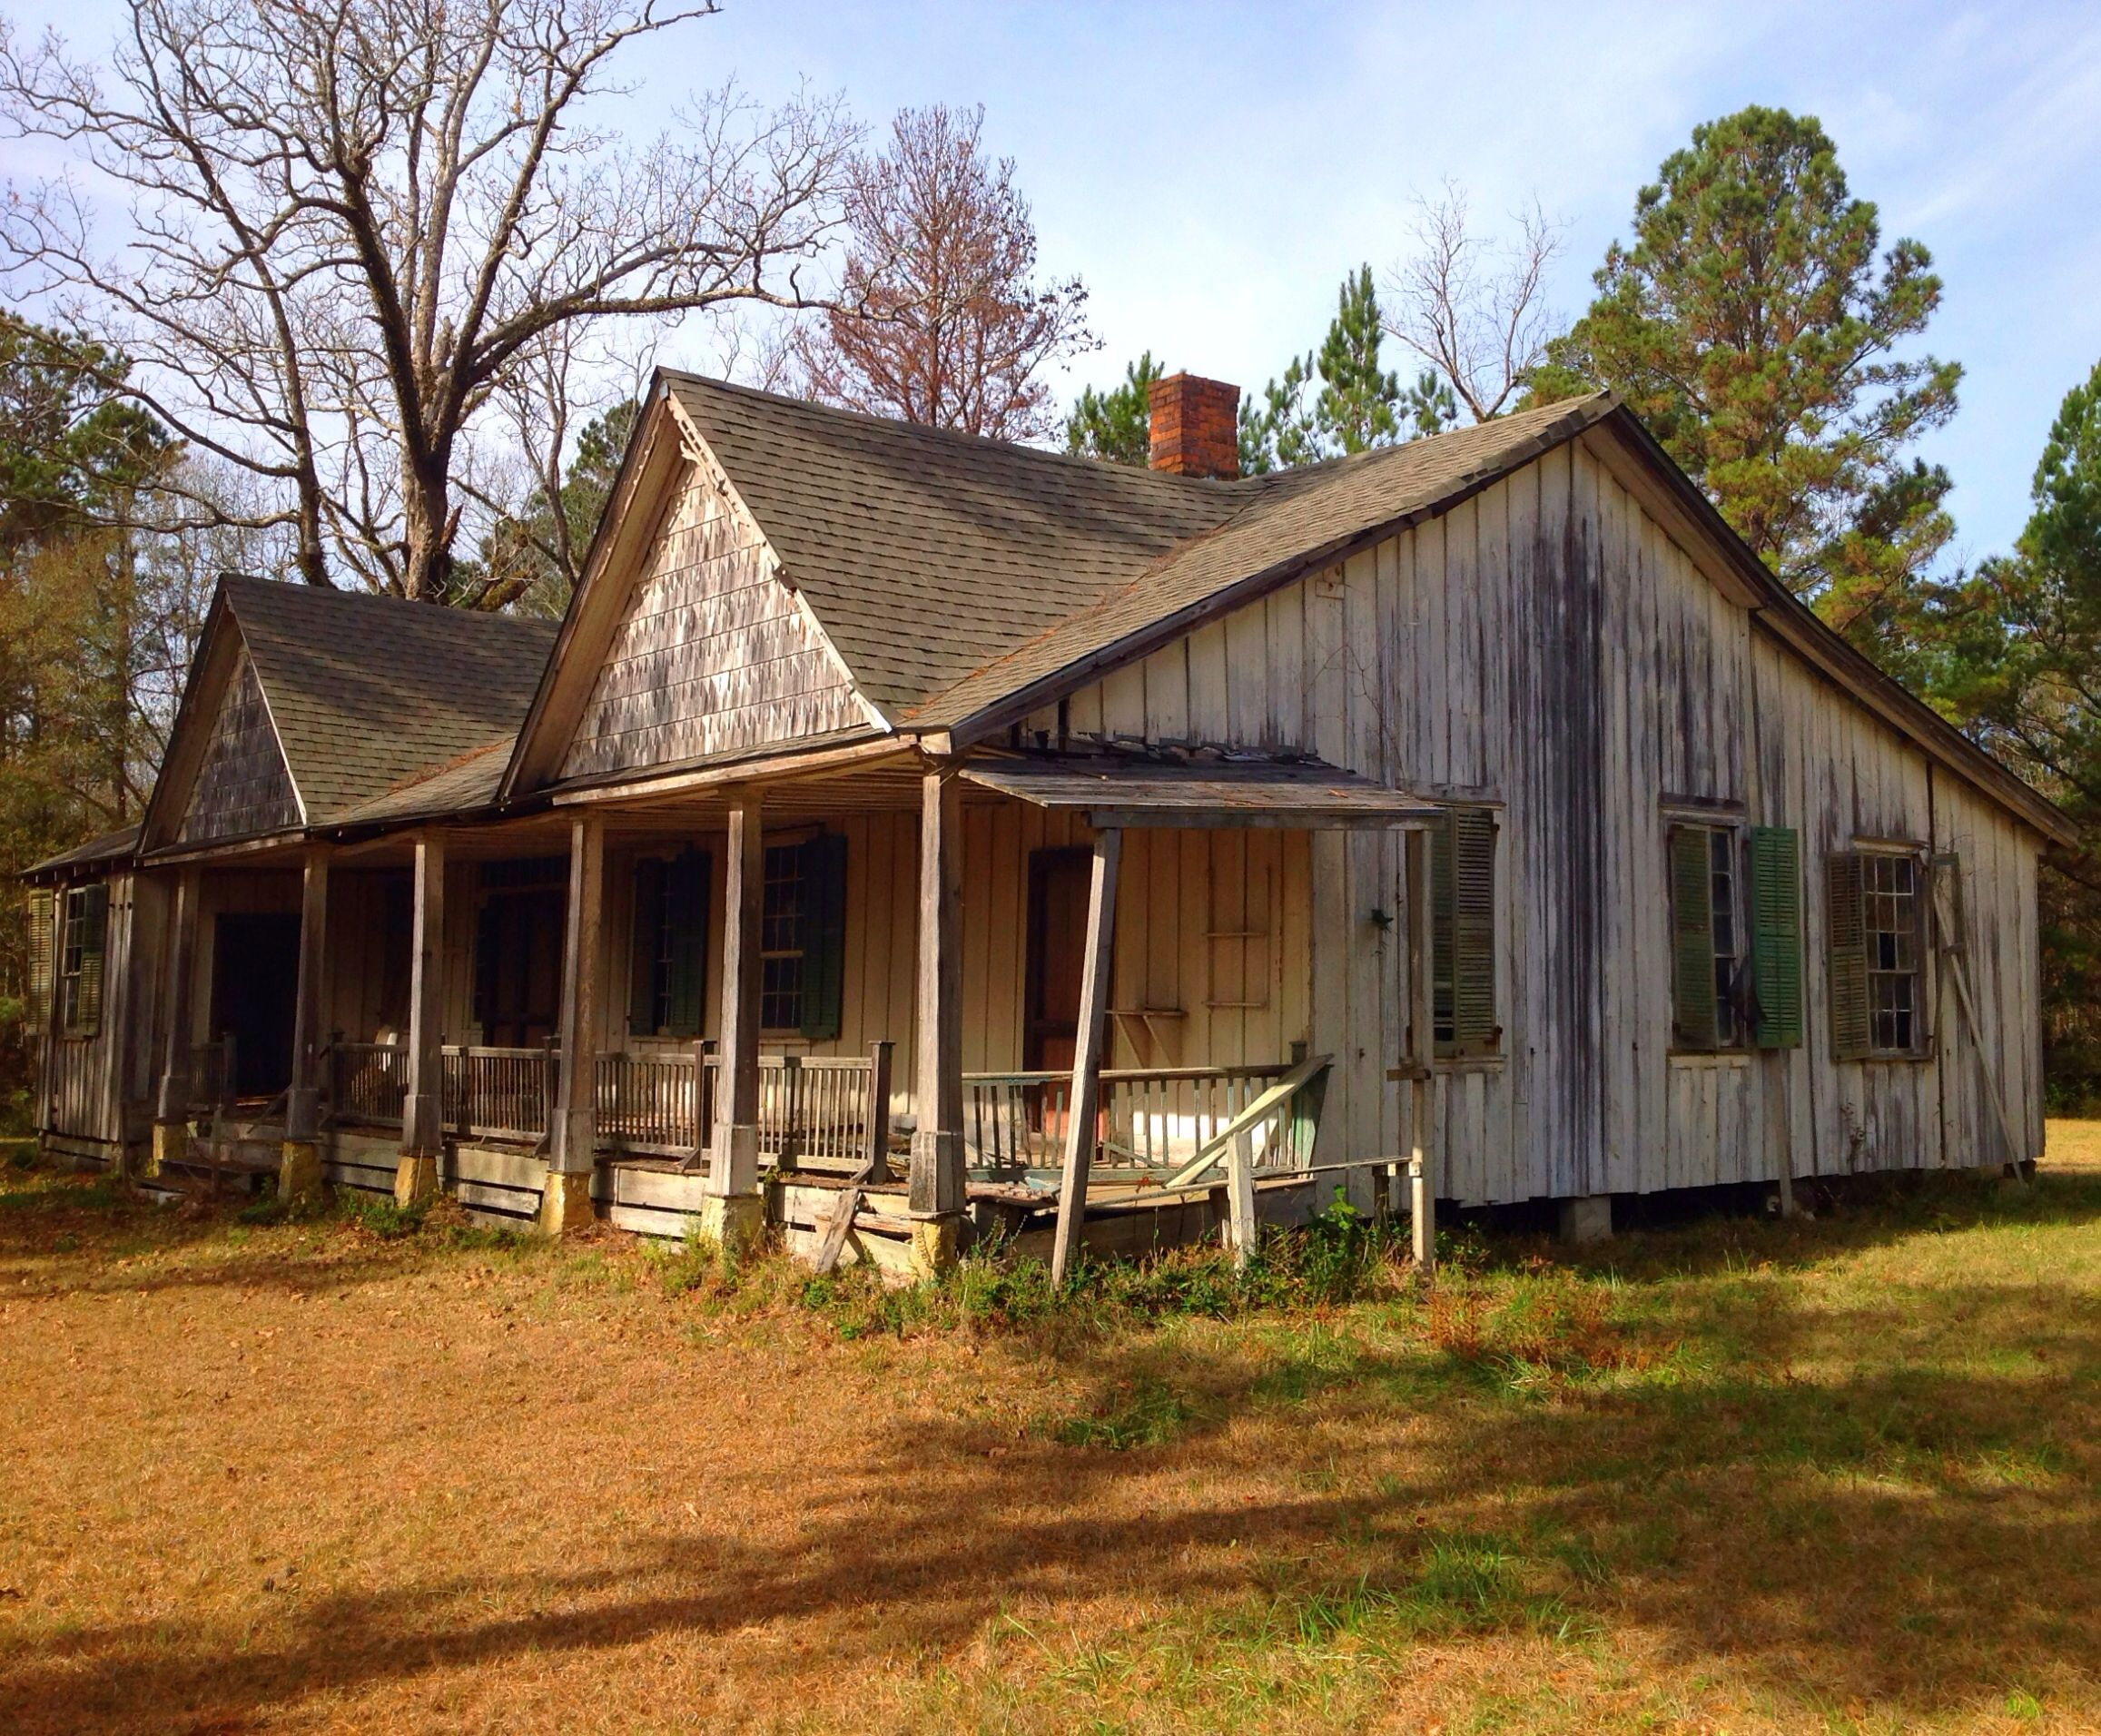 cabins of bow sale for homes park properties this bend lake hochatown state feet and in located near cabin alabama united broken oklahoma luxury beavers features square vacation log